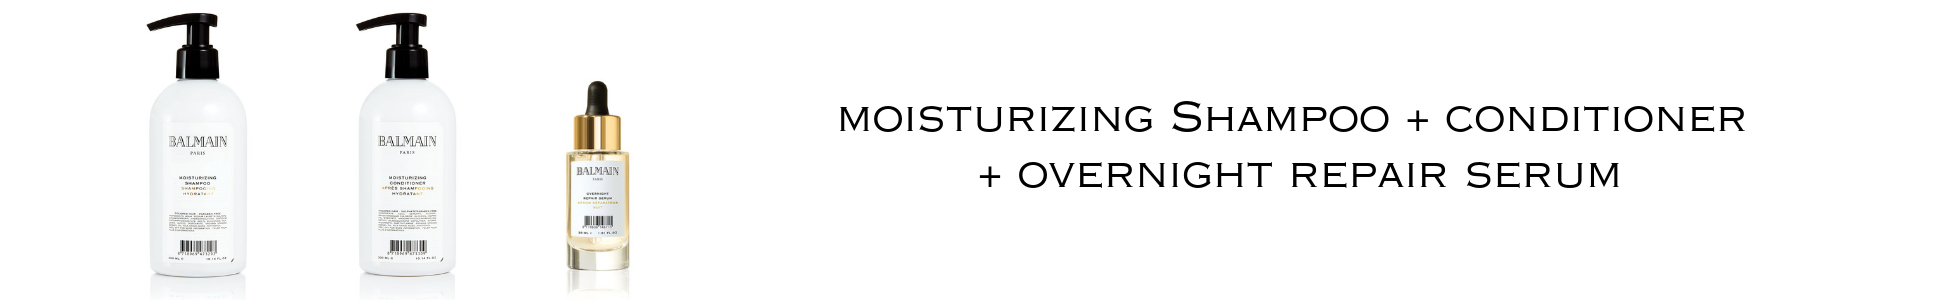 Volume Shampoo + Moisturizing Conditioner-3